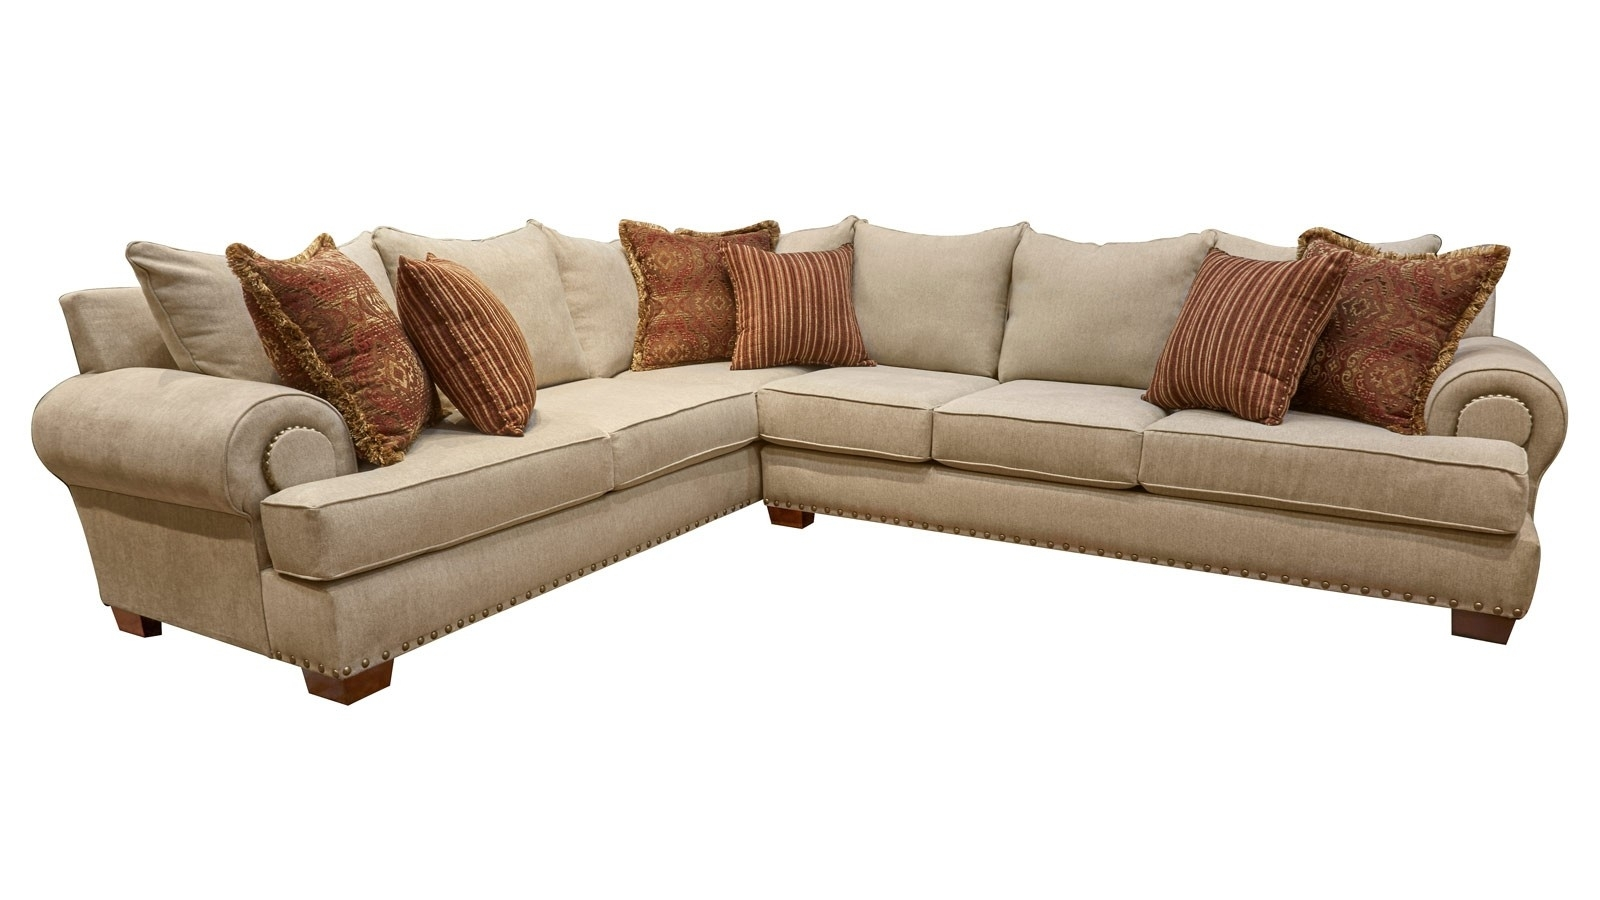 10 Inspirations Of Gallery Furniture Sectional Sofas